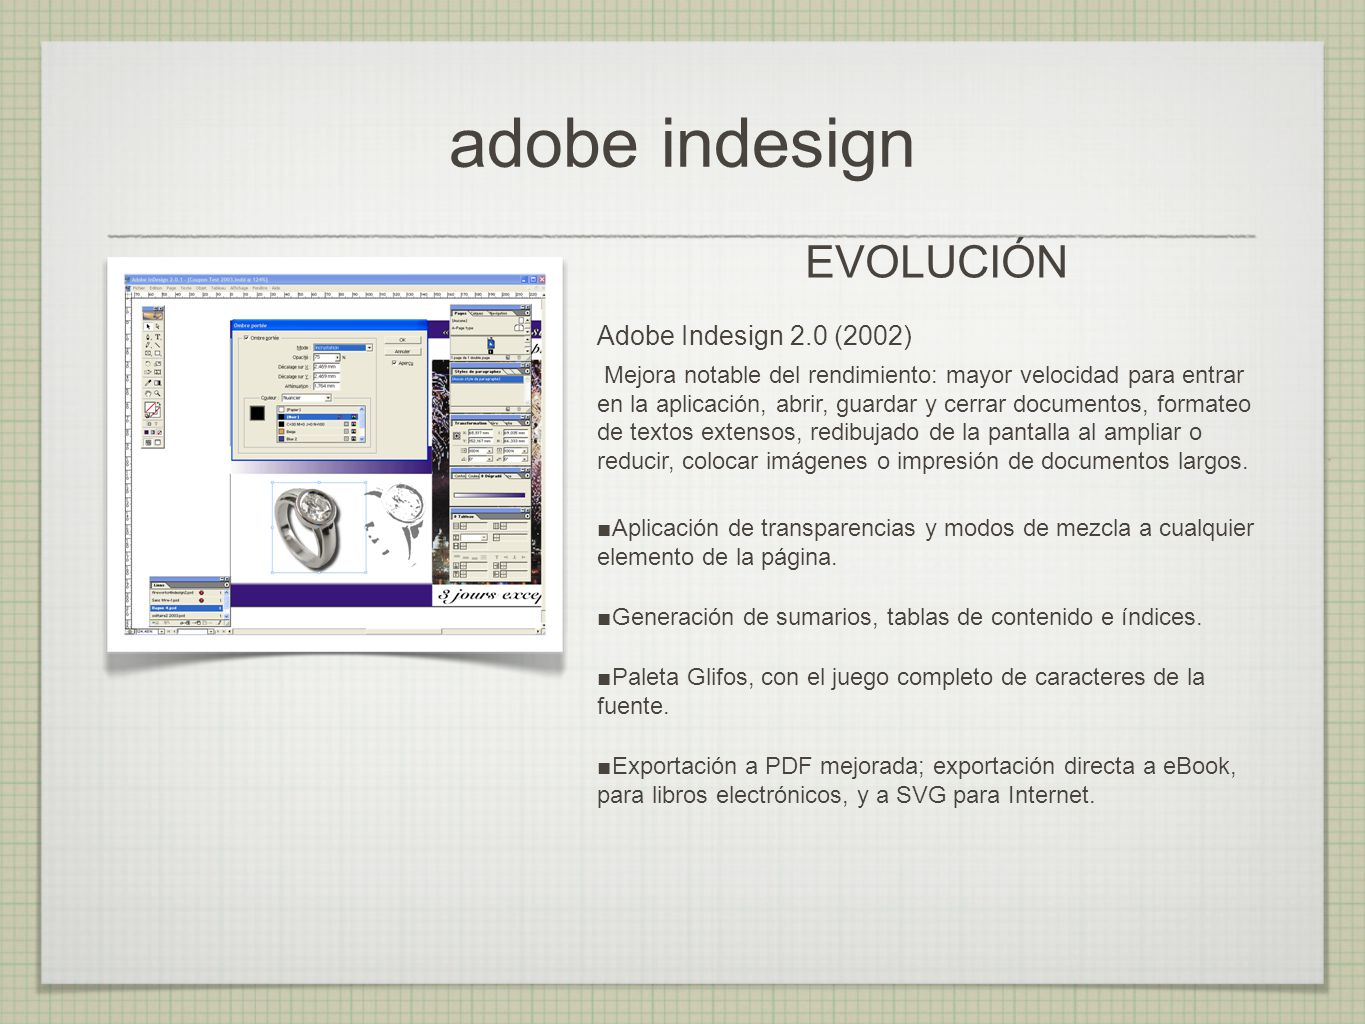 indesign cc 2014 direct download